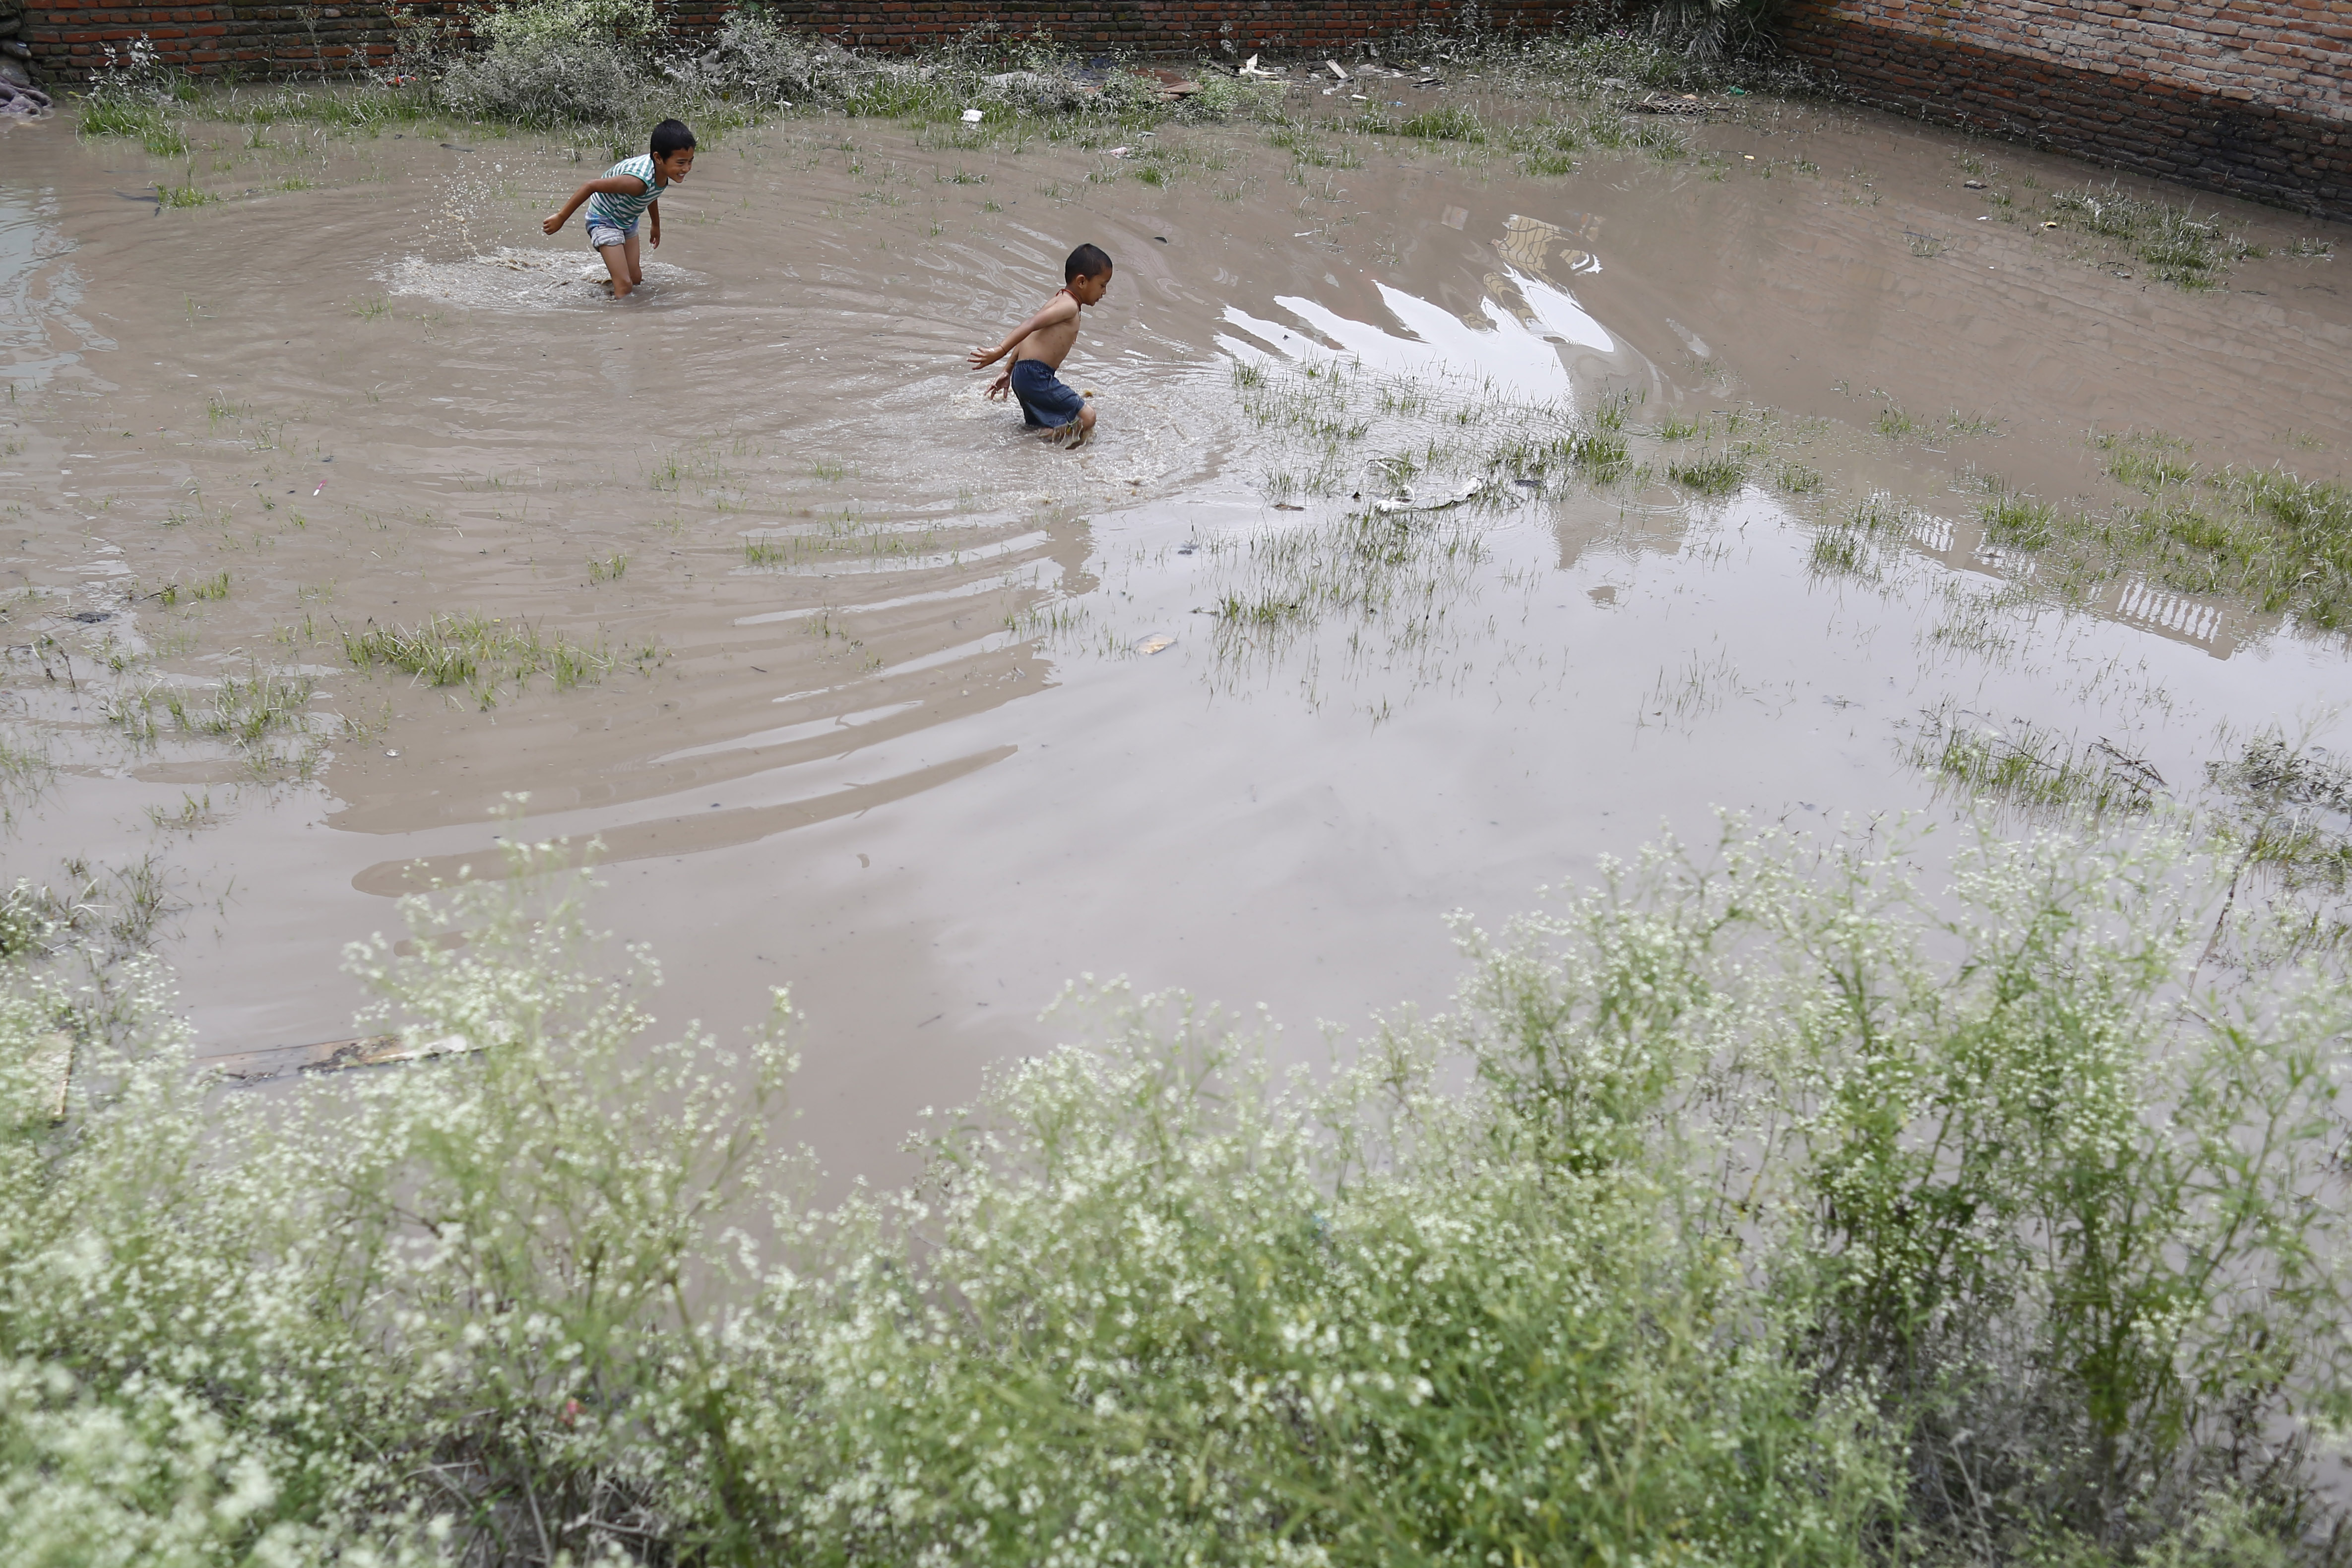 Kids play in a flooded patch of land after  water from swelled Dhobikhola river entered settlements in Kathmandu, Nepal on Wednesday, August 15, 2018.